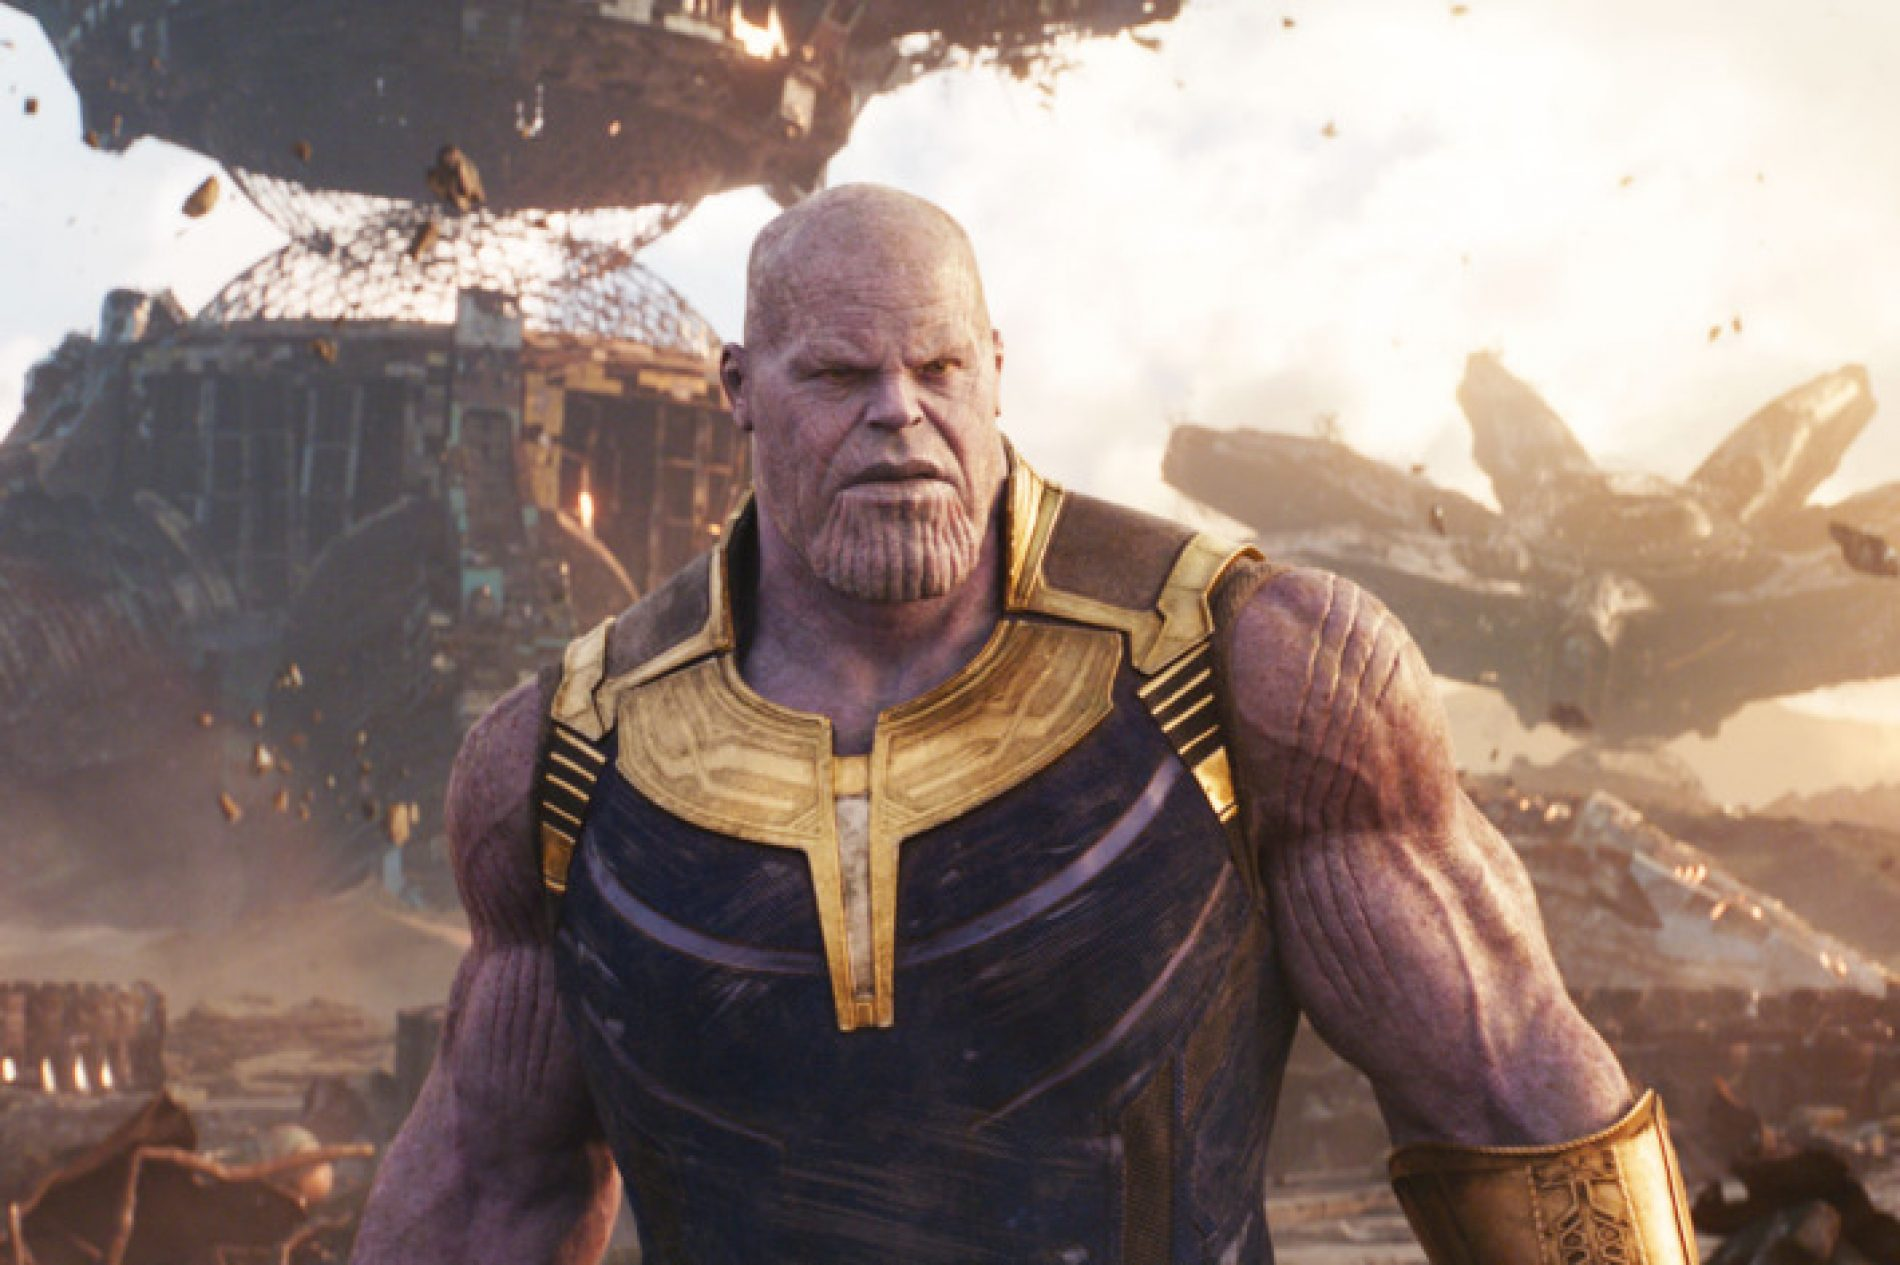 The Villain Thanos from 'Avengers: Infinity War' Is the Internet's New Daddy